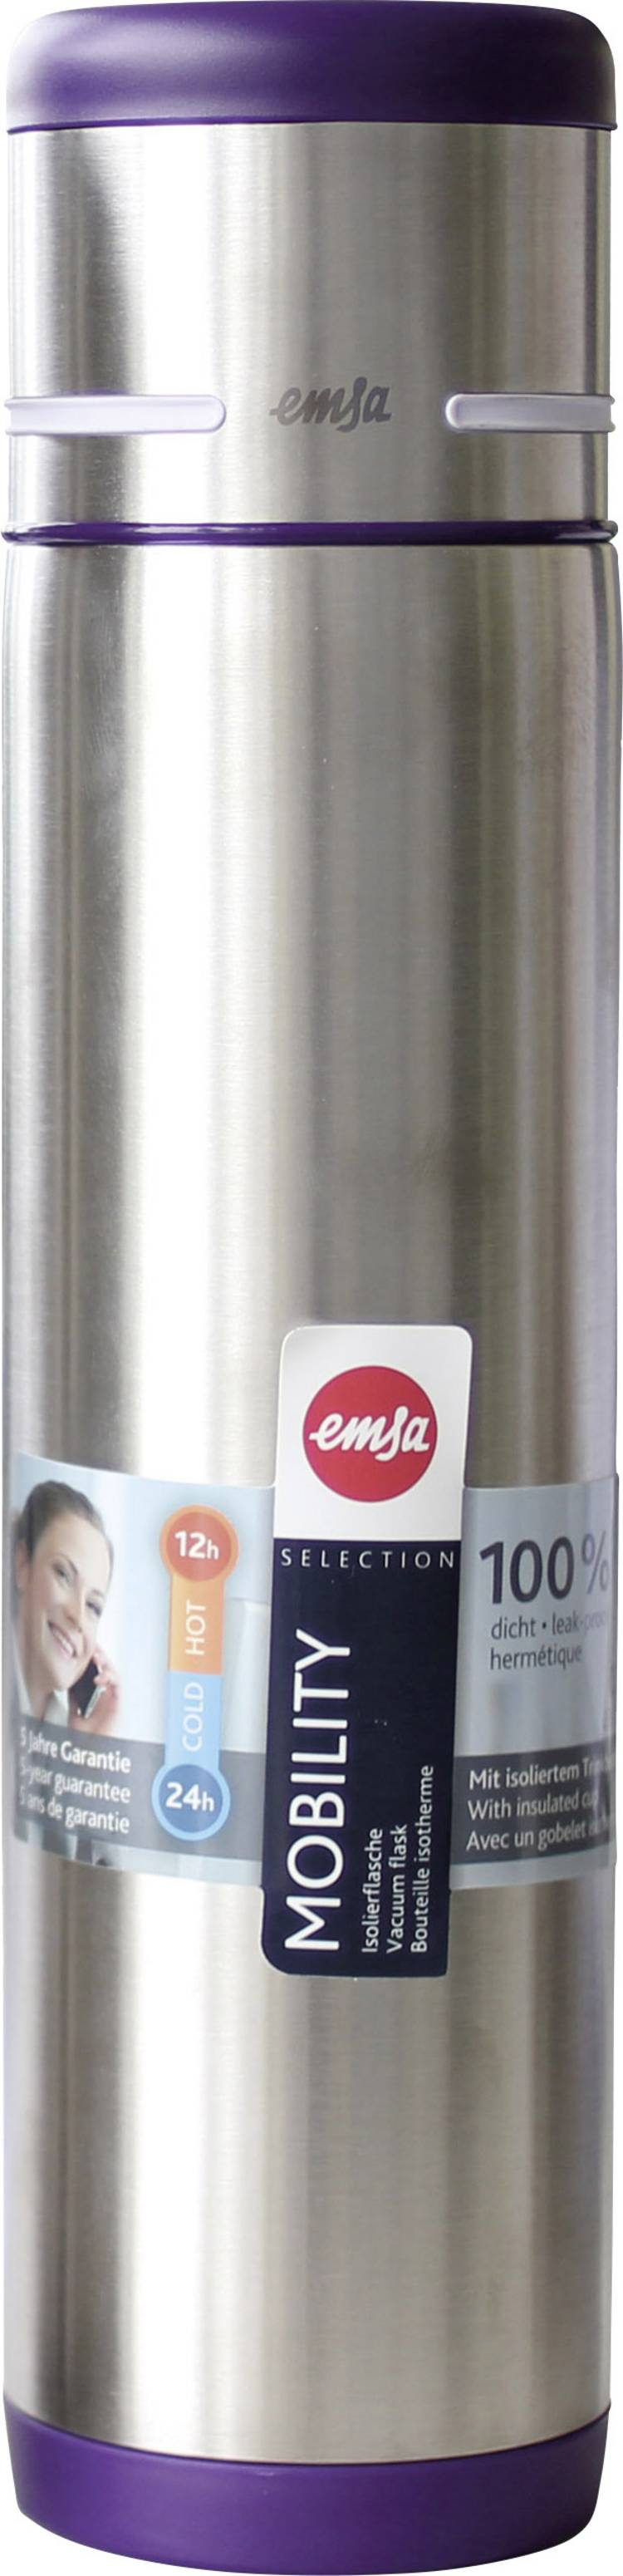 Image of Emsa-thermosfles Mobility, 1 liter, donkerpaars